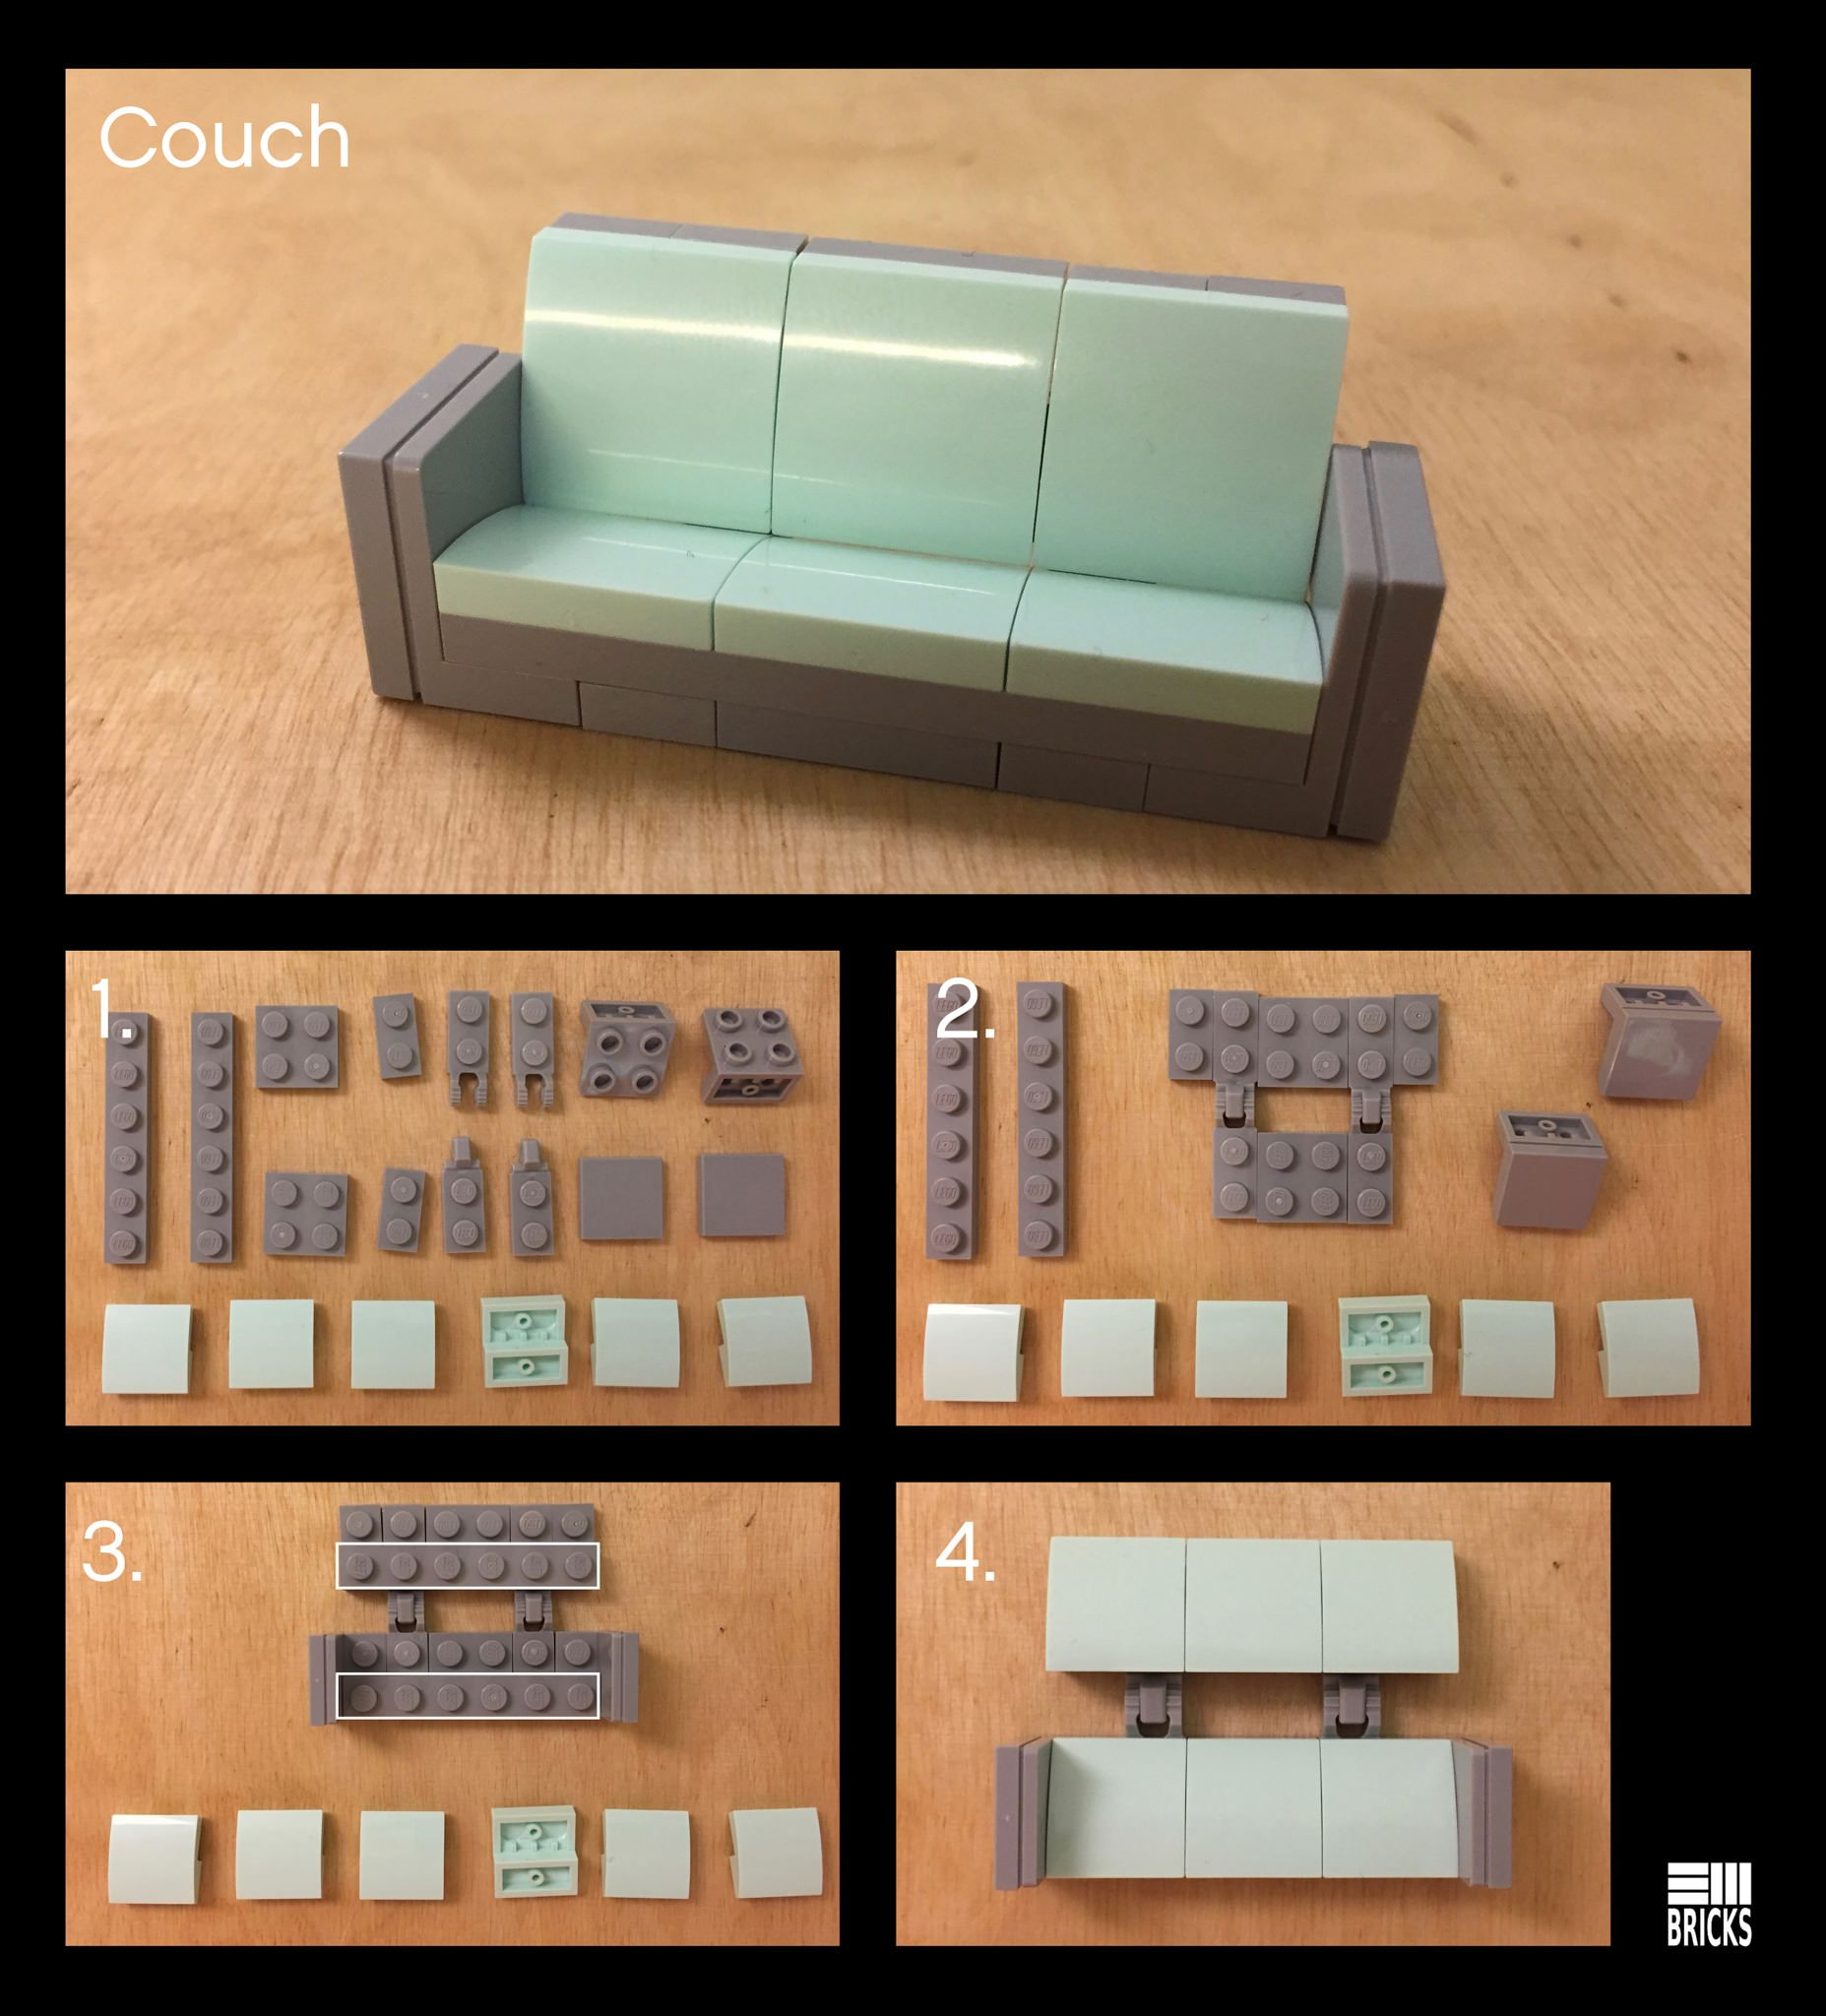 How To Make A Simple Lego Sofa Des Kelly Beds Couch Instructions Connor Pinterest Creations And Build For Bradley